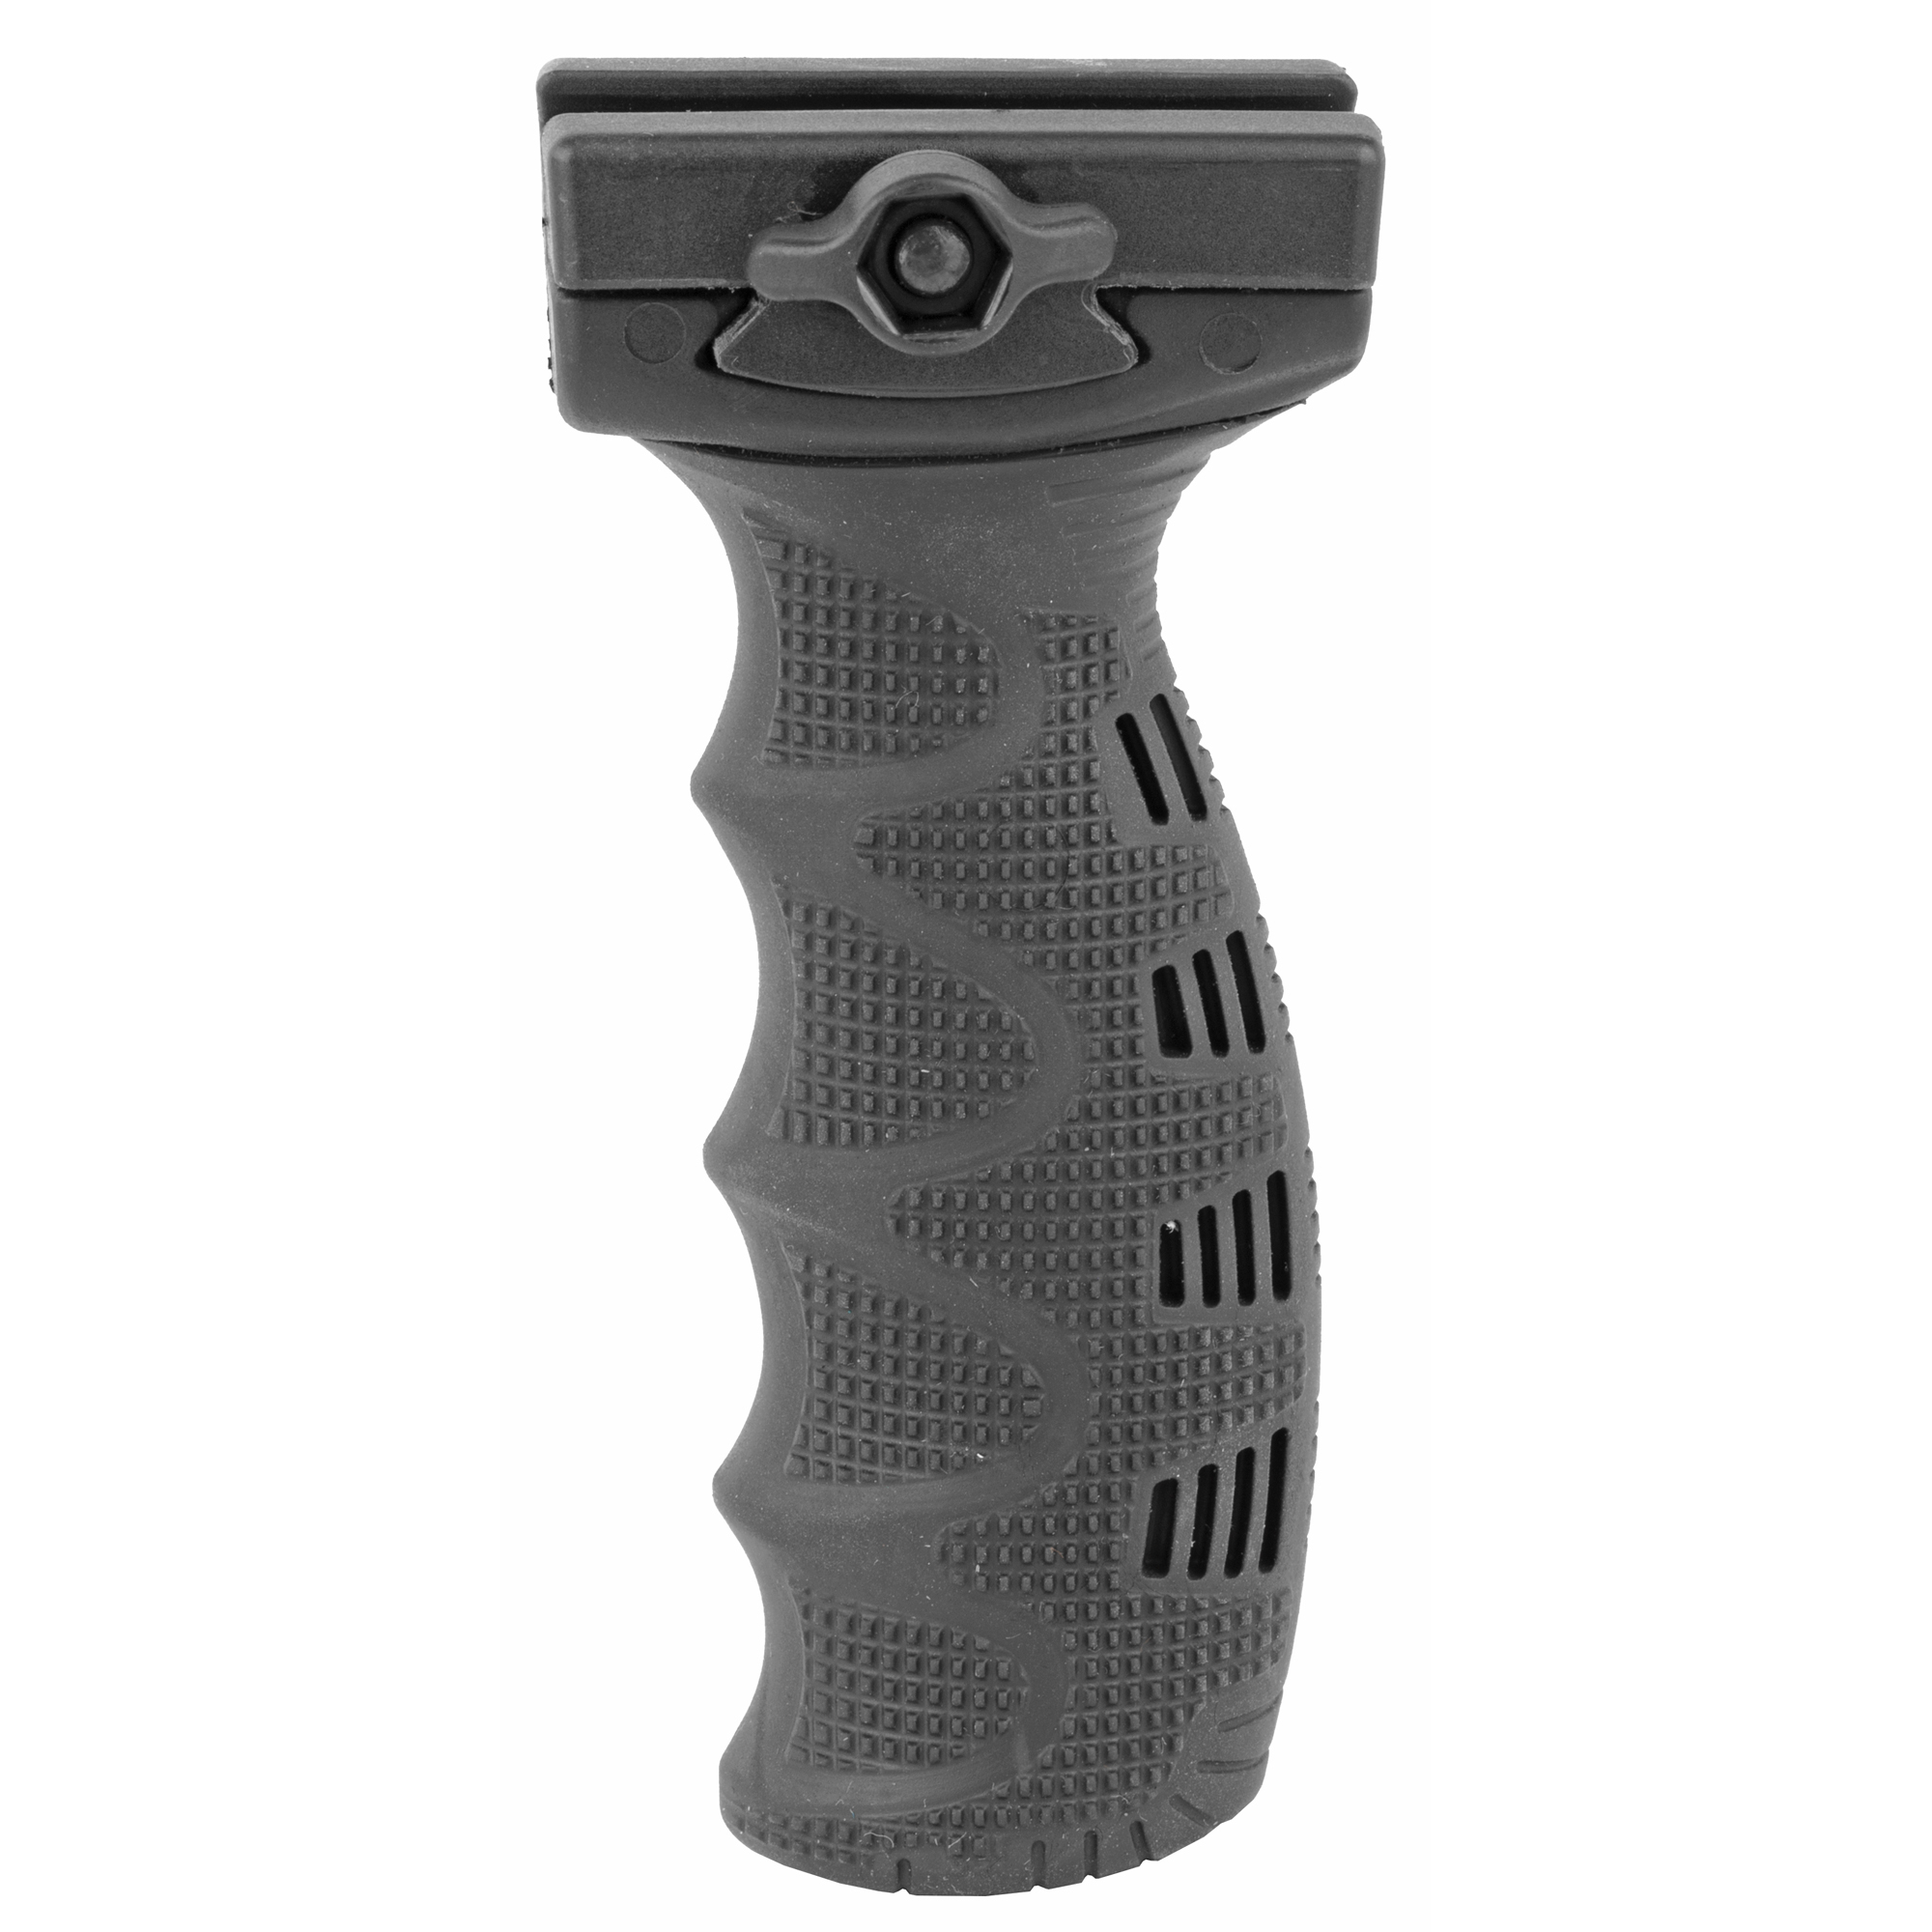 The new REG State-of-the-Art Rubberized Ergonomically Designed Tactical Foregrip has a unique comfortable texture and sleek contour for superior hold.